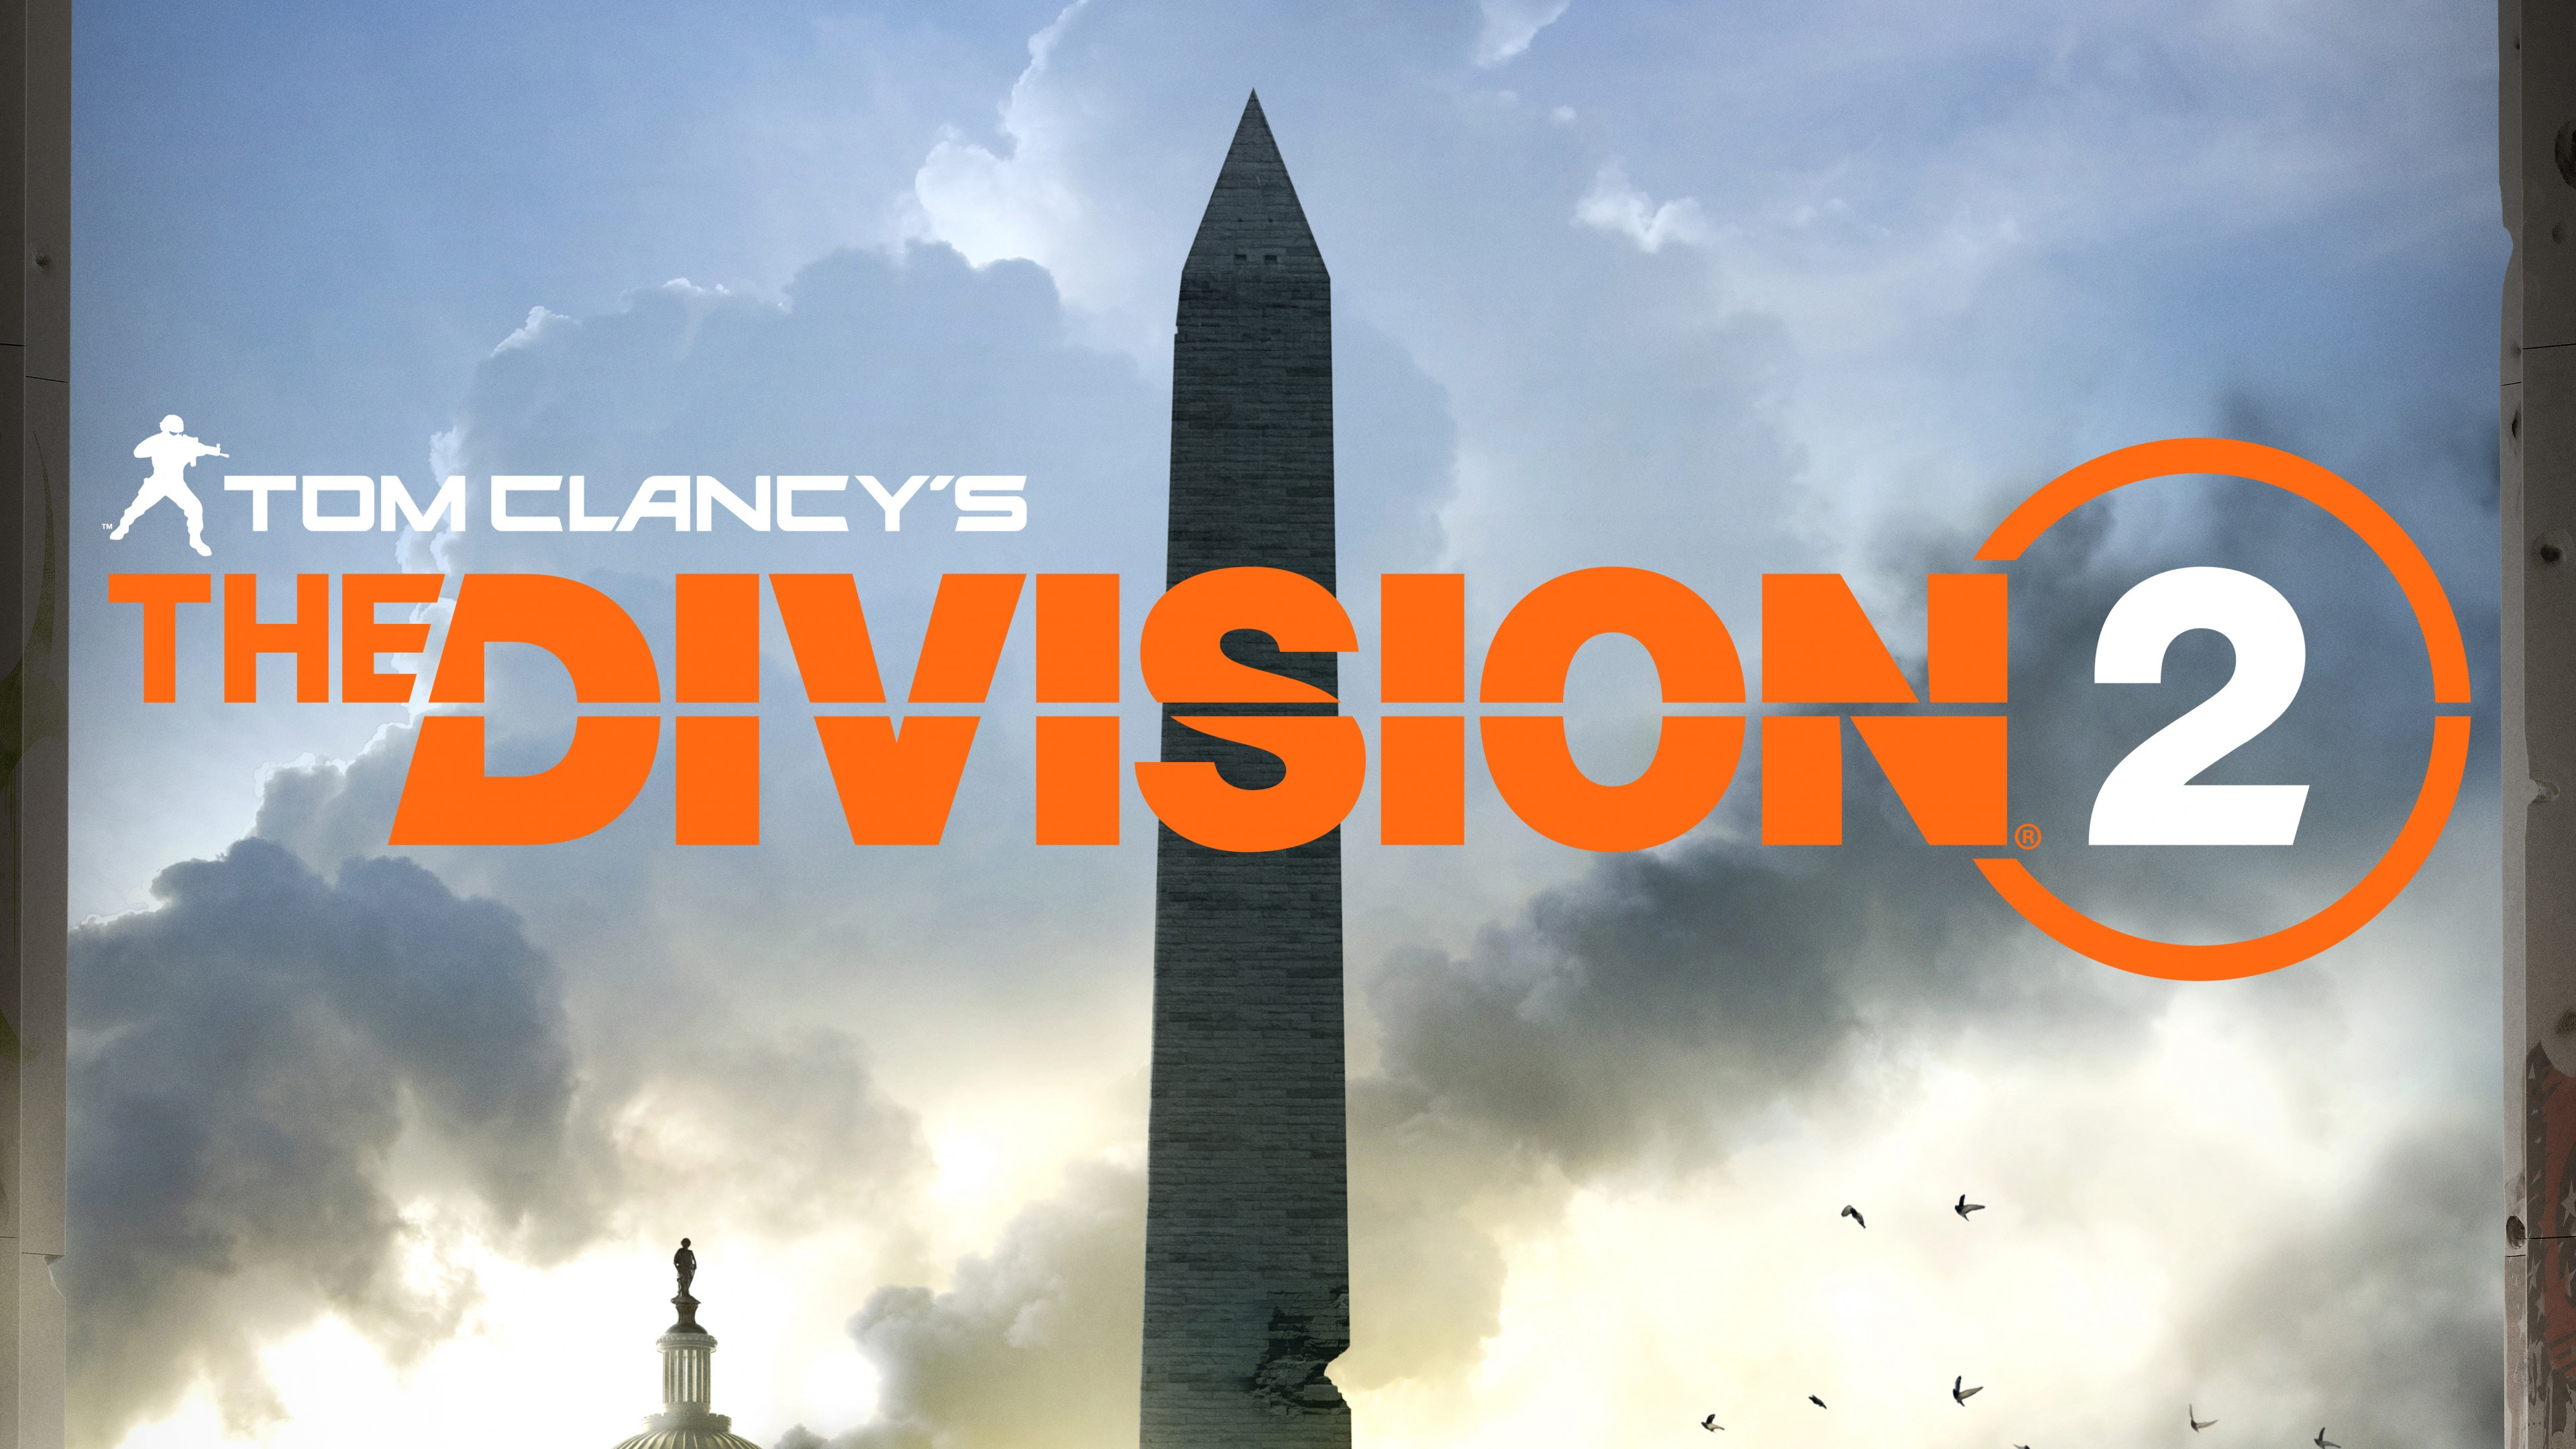 Wallpaper Tom Clancys The Division 2 E3 2018 Poster 4k